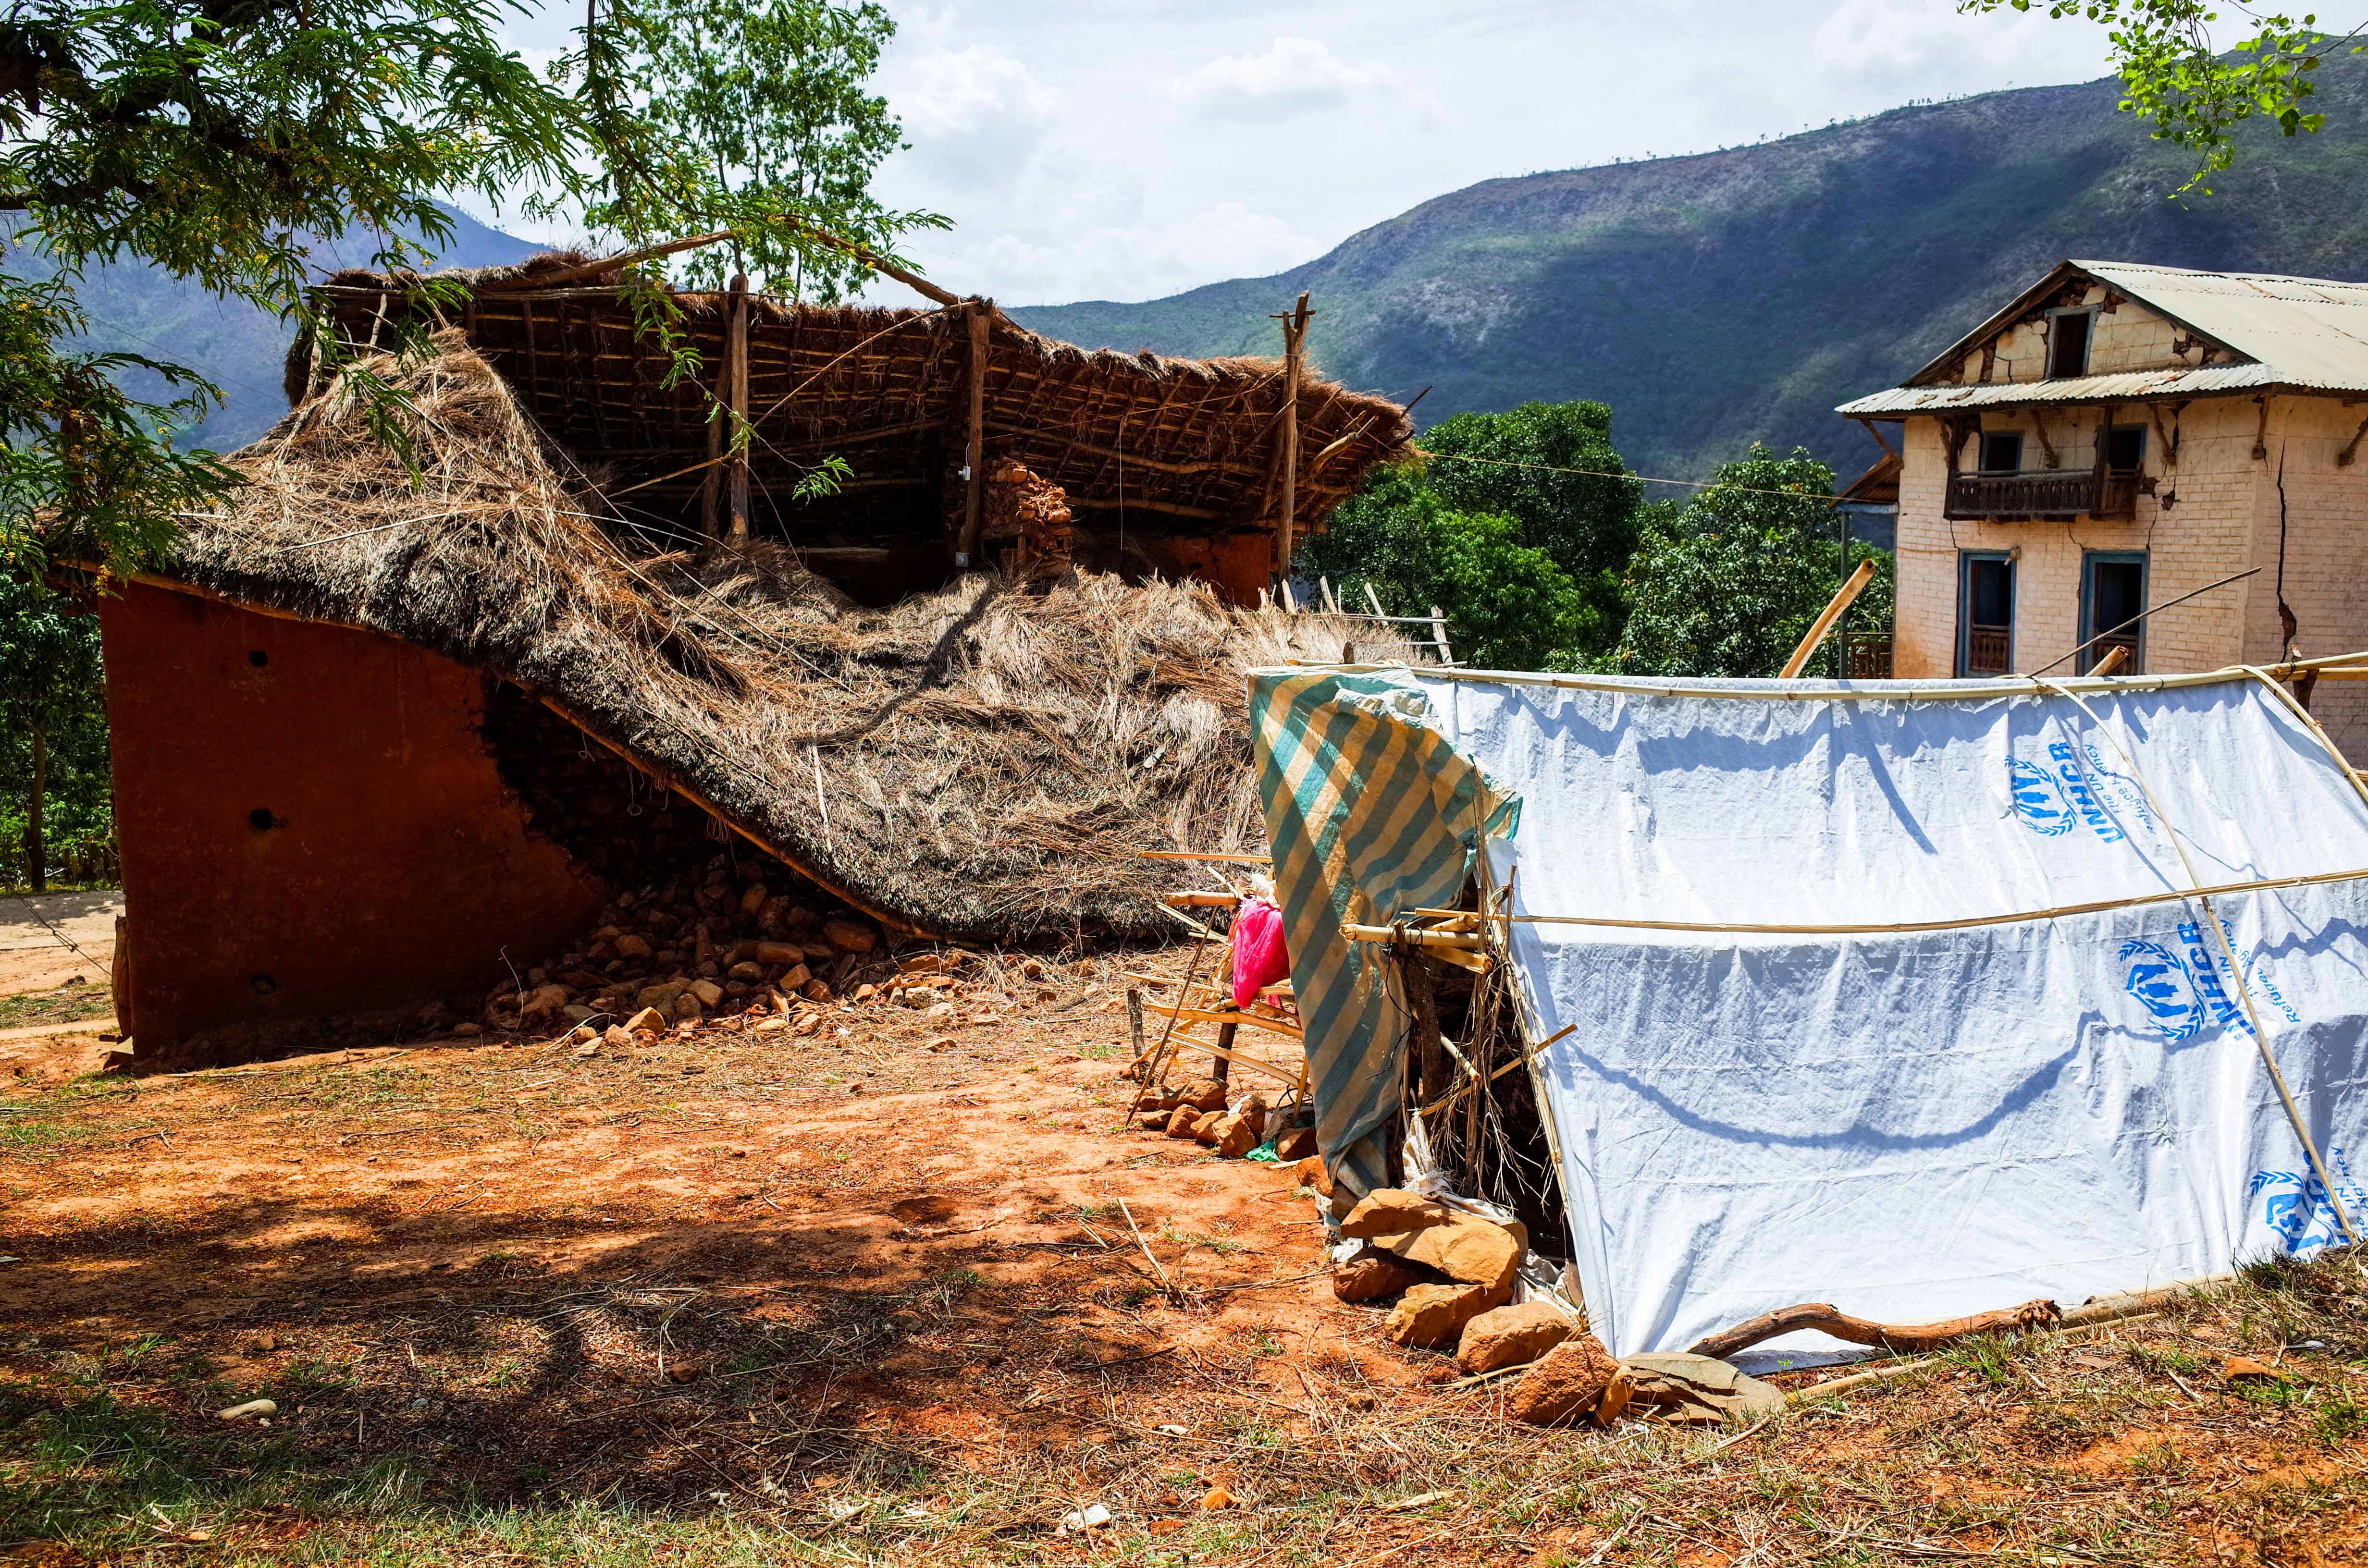 Tarpaulin to build tent given by UNSCR